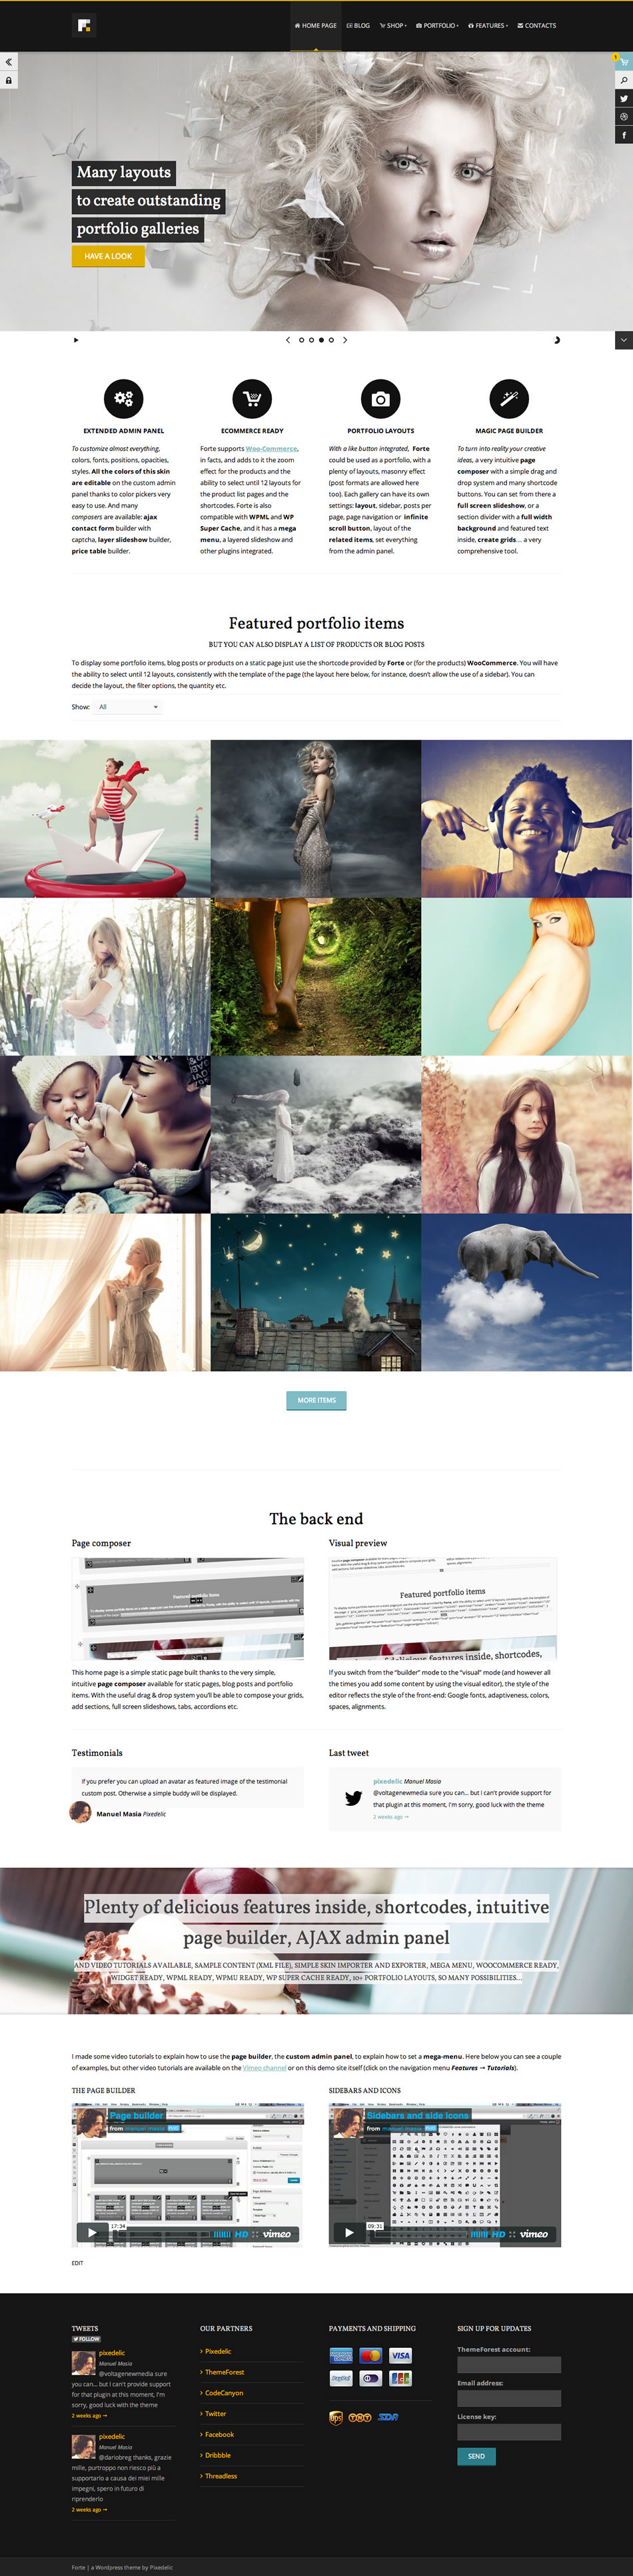 forte wordpress theme screenshot